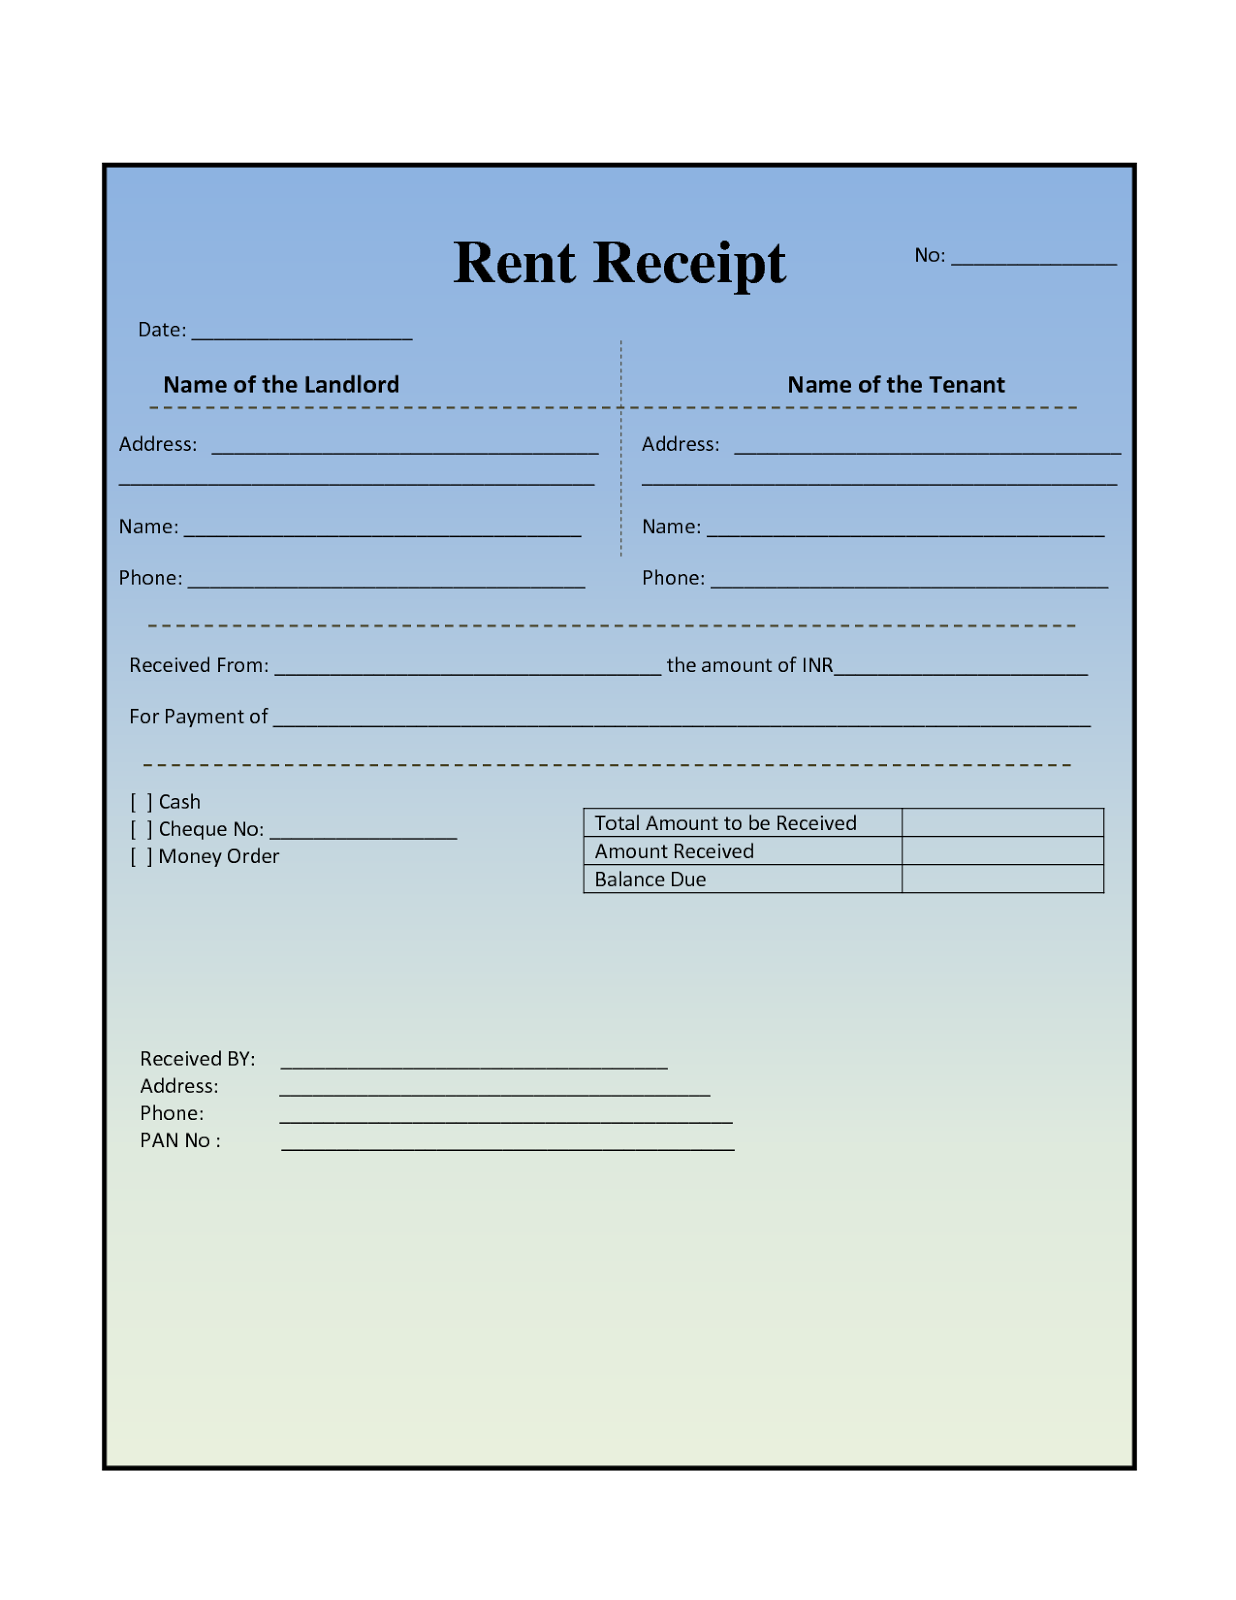 house rental invoice template in excel format templates house rental invoice template in excel format